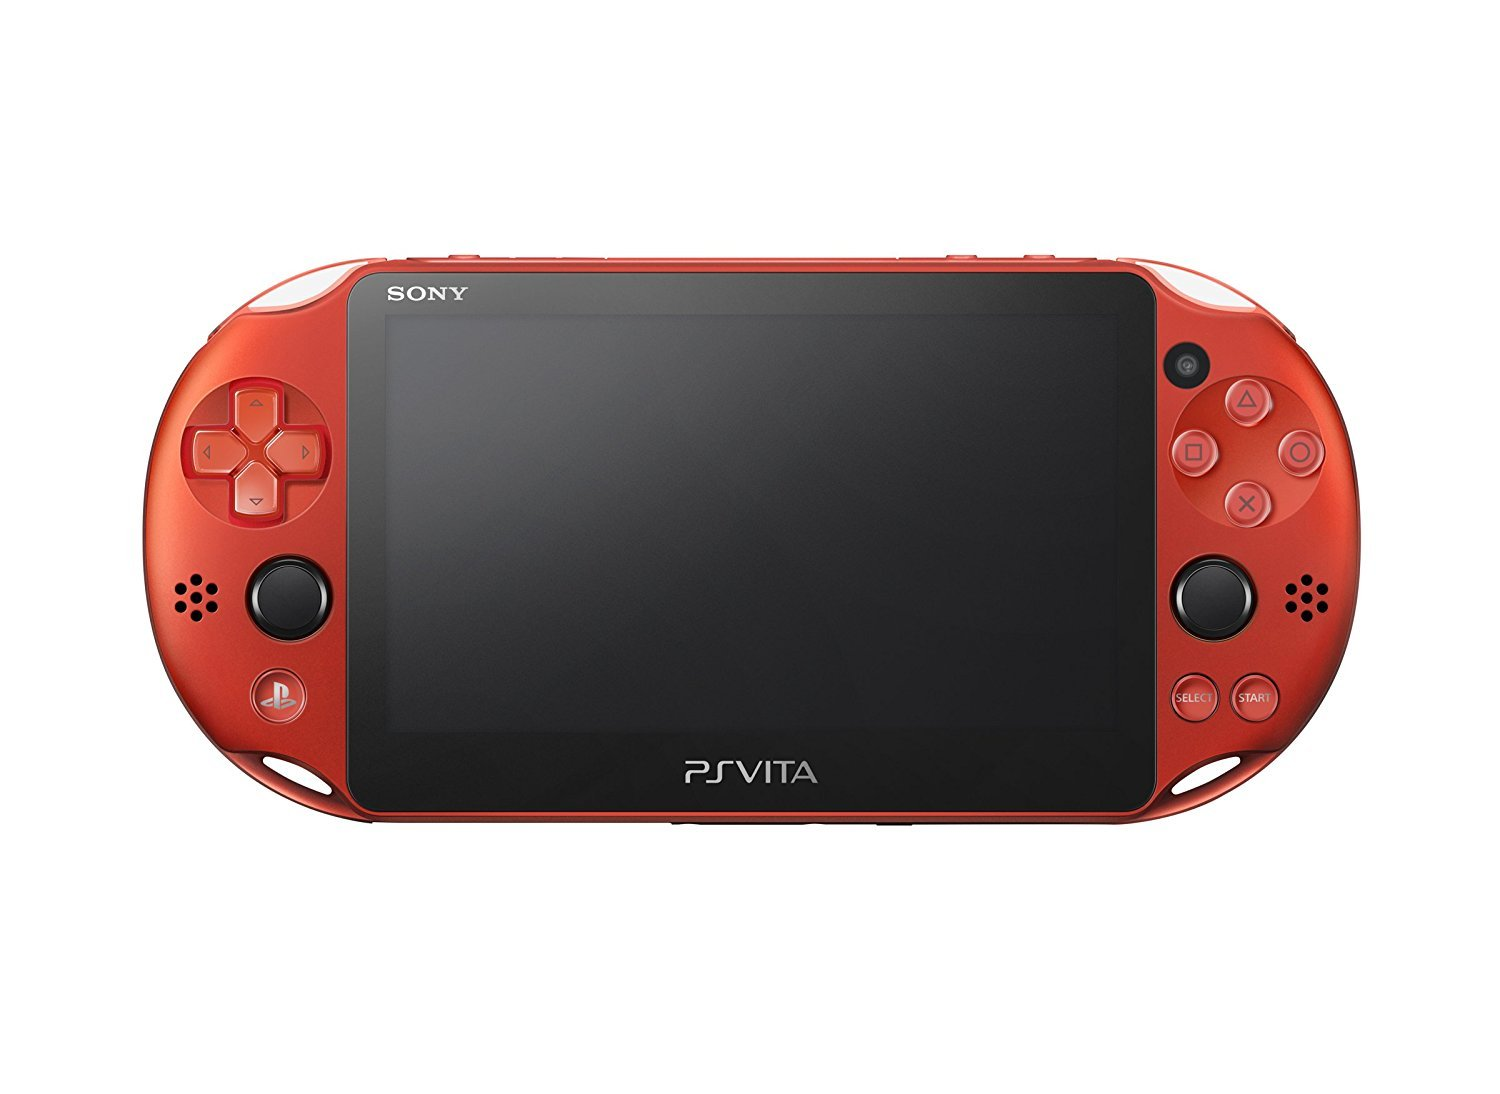 PlayStation Vita Wi-Fi Metallic Red PCH-2000ZA26 (Japan Import) by Sony (Image #2)